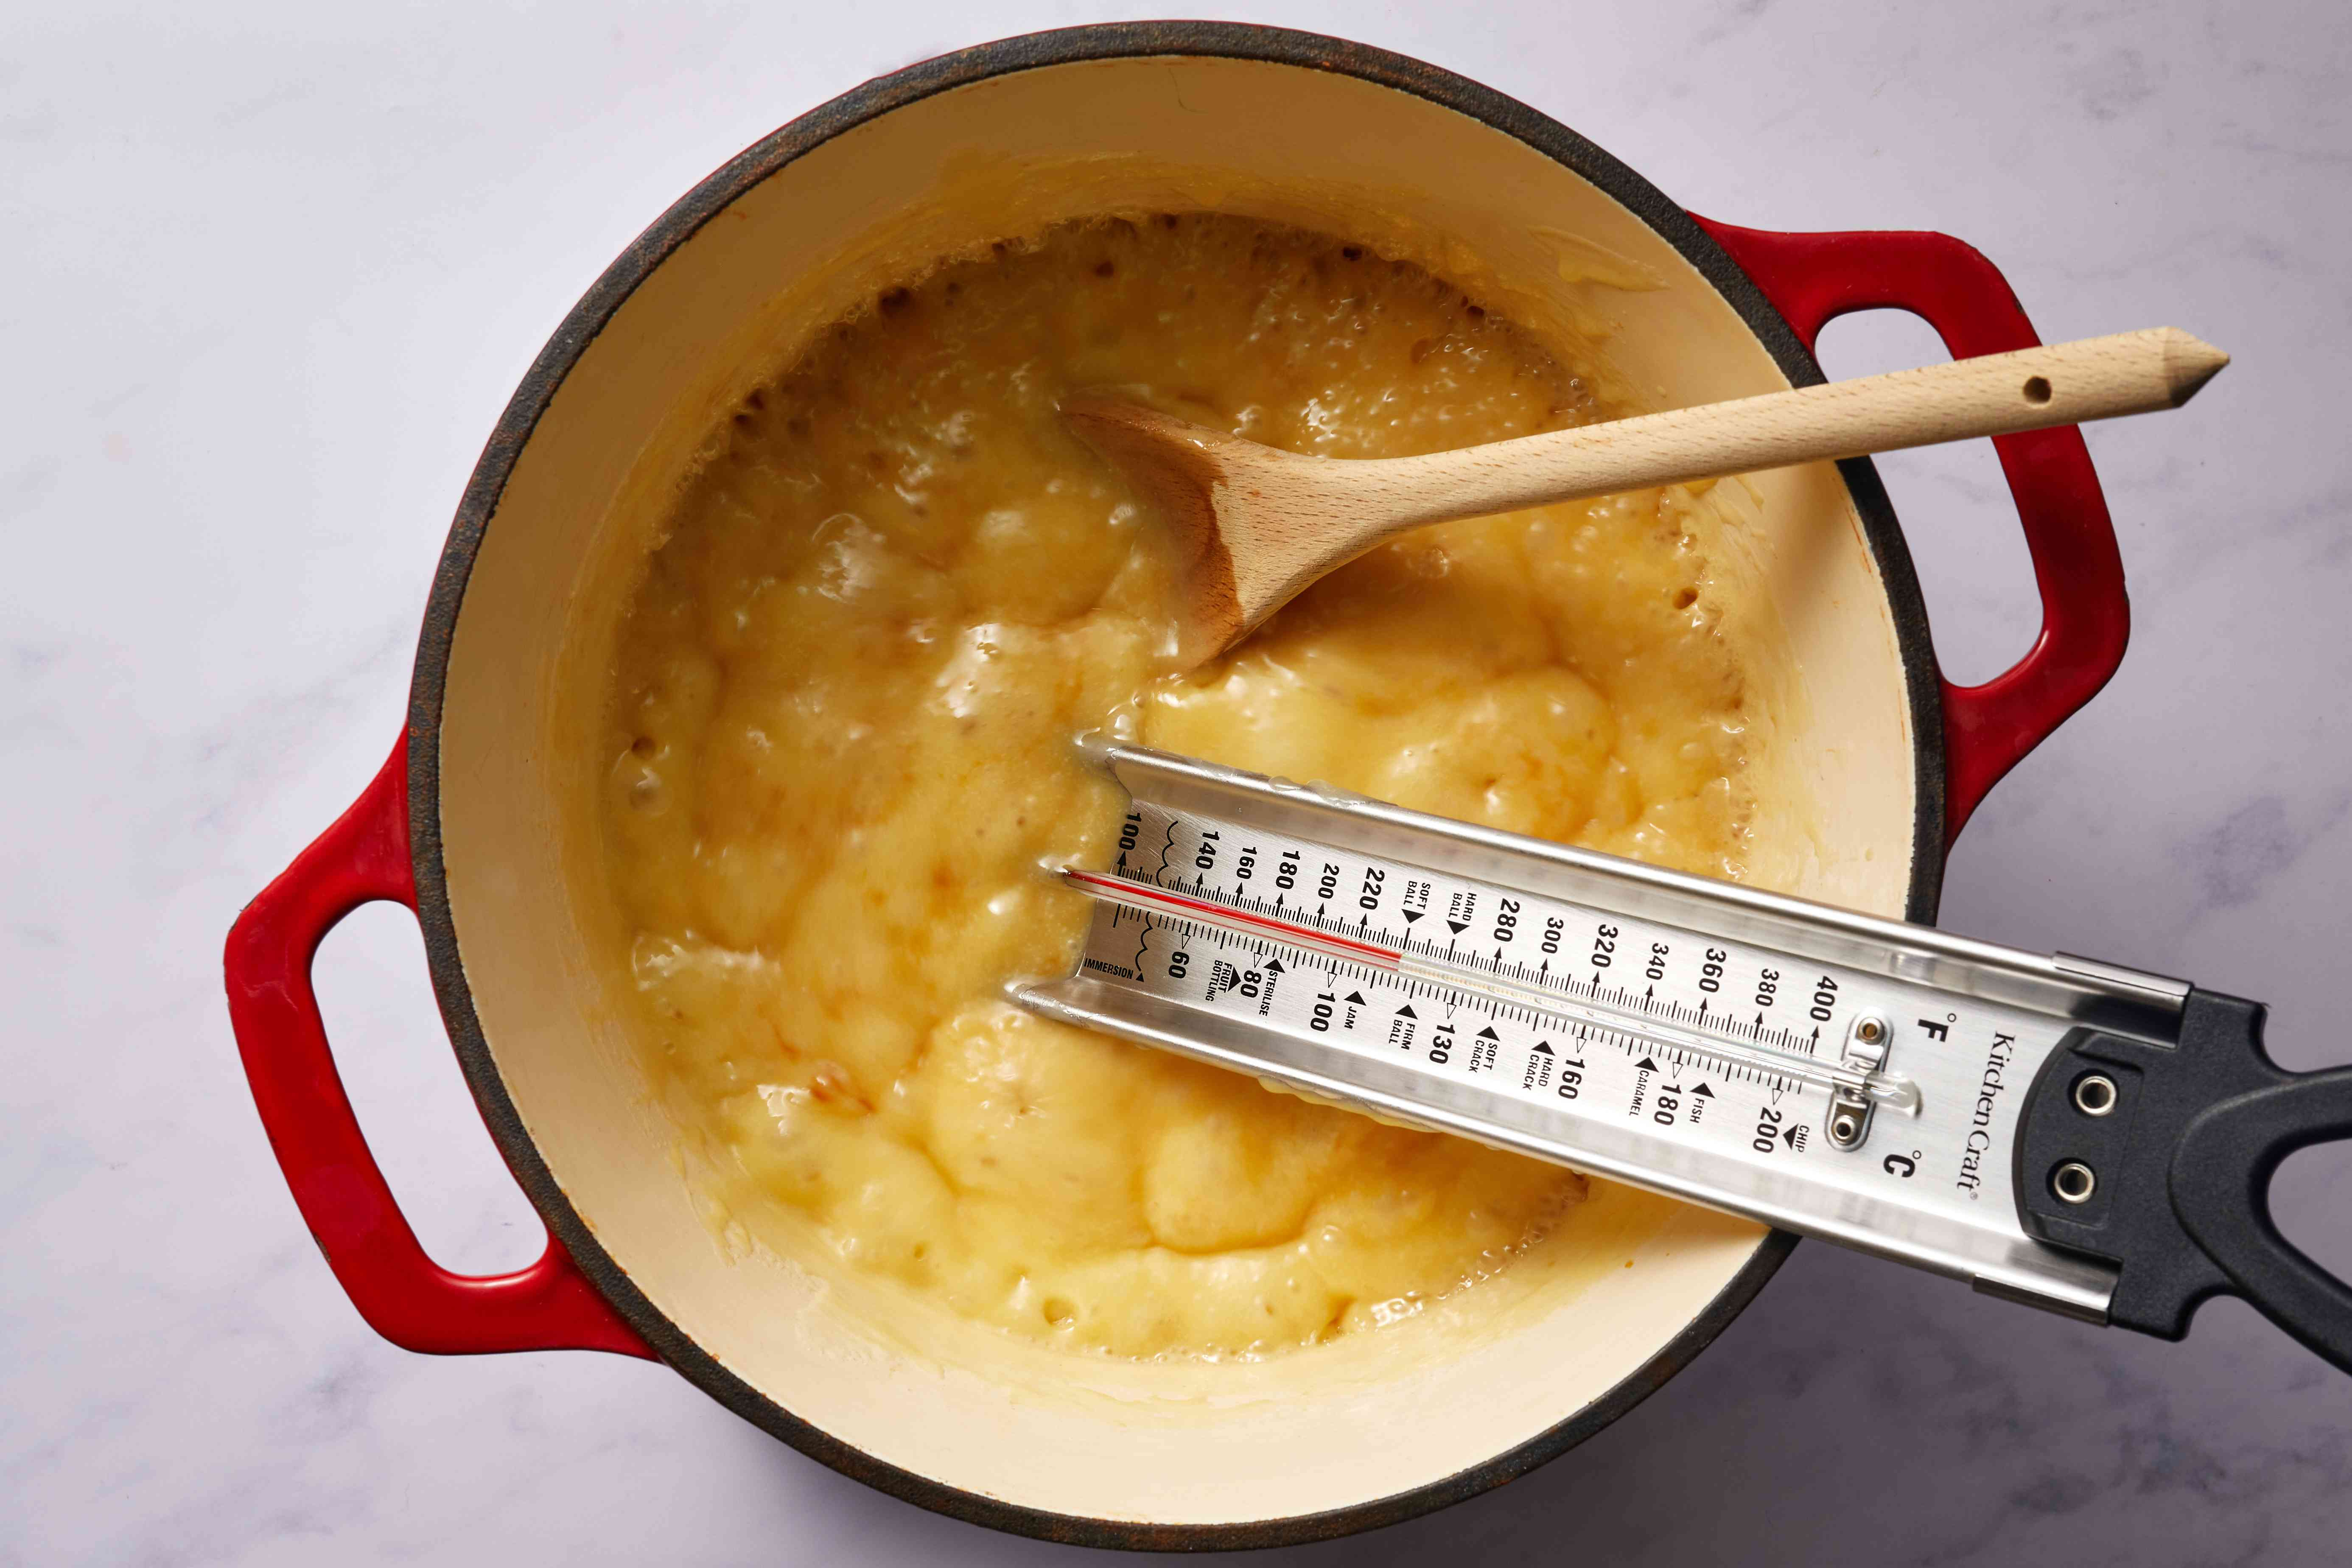 butter mixture cooking in a saucepan, thermometer